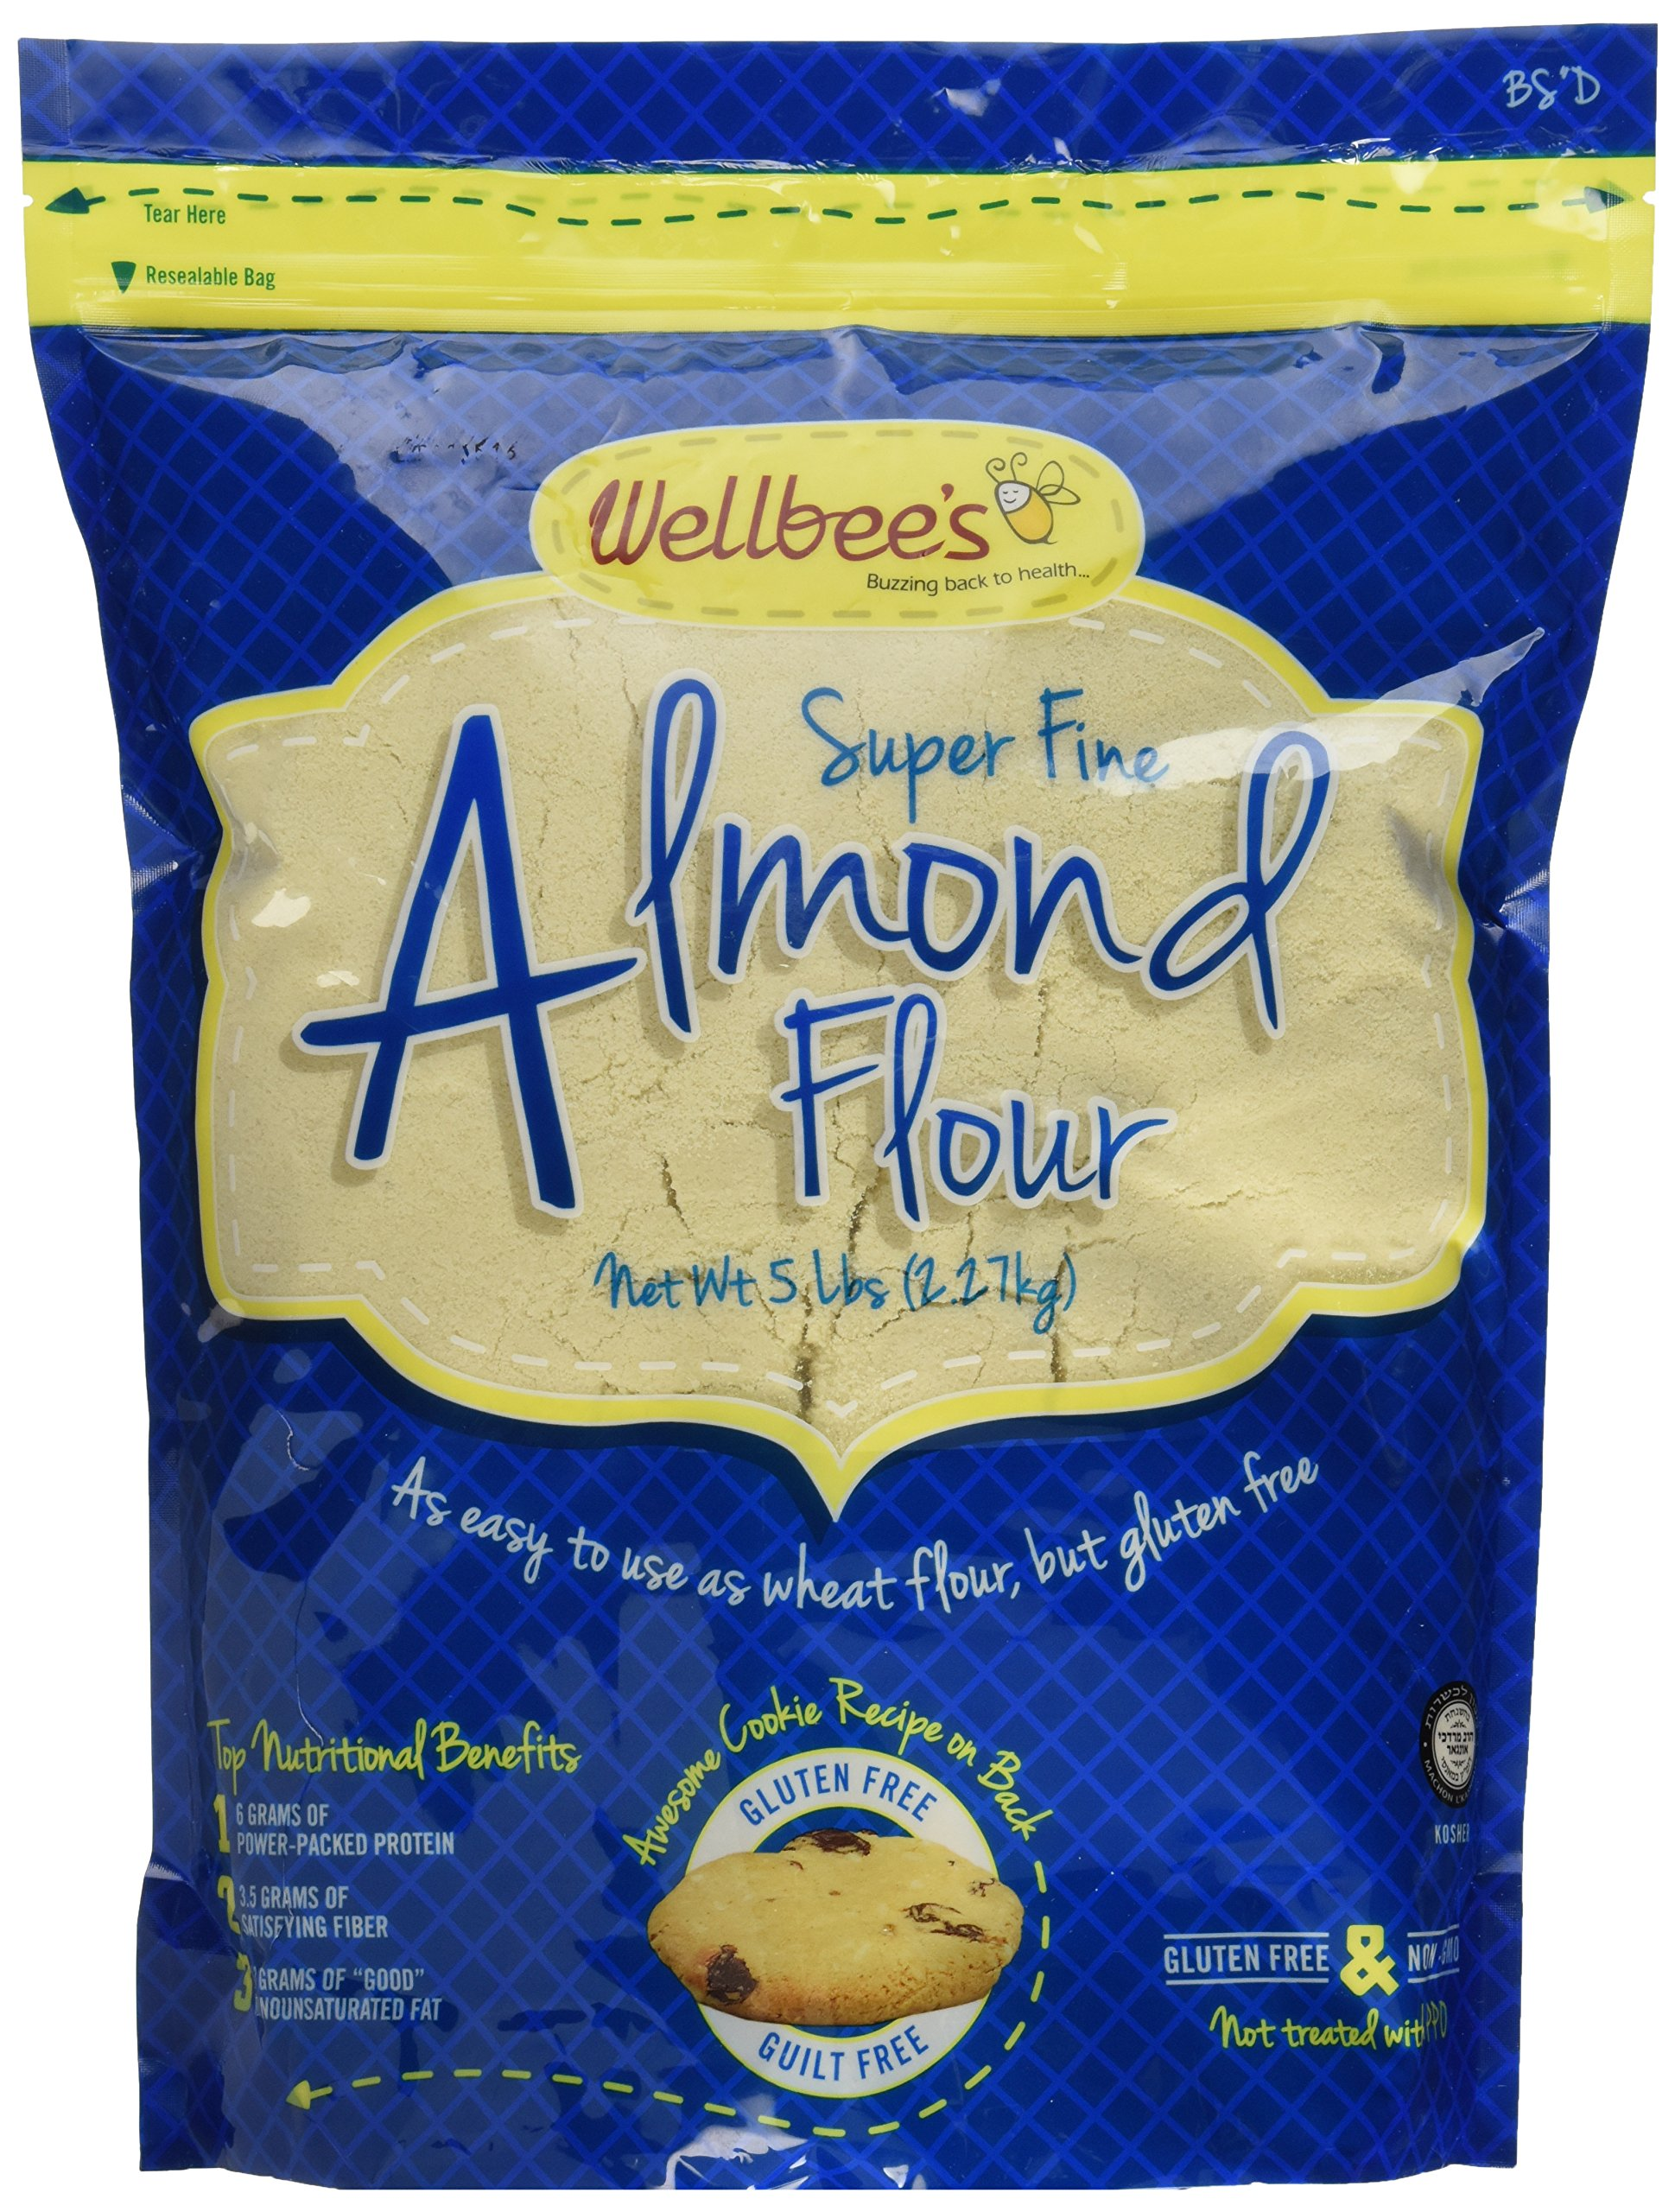 Wellbee's Super Fine Blanched Almond Flour / Powder 5 LB